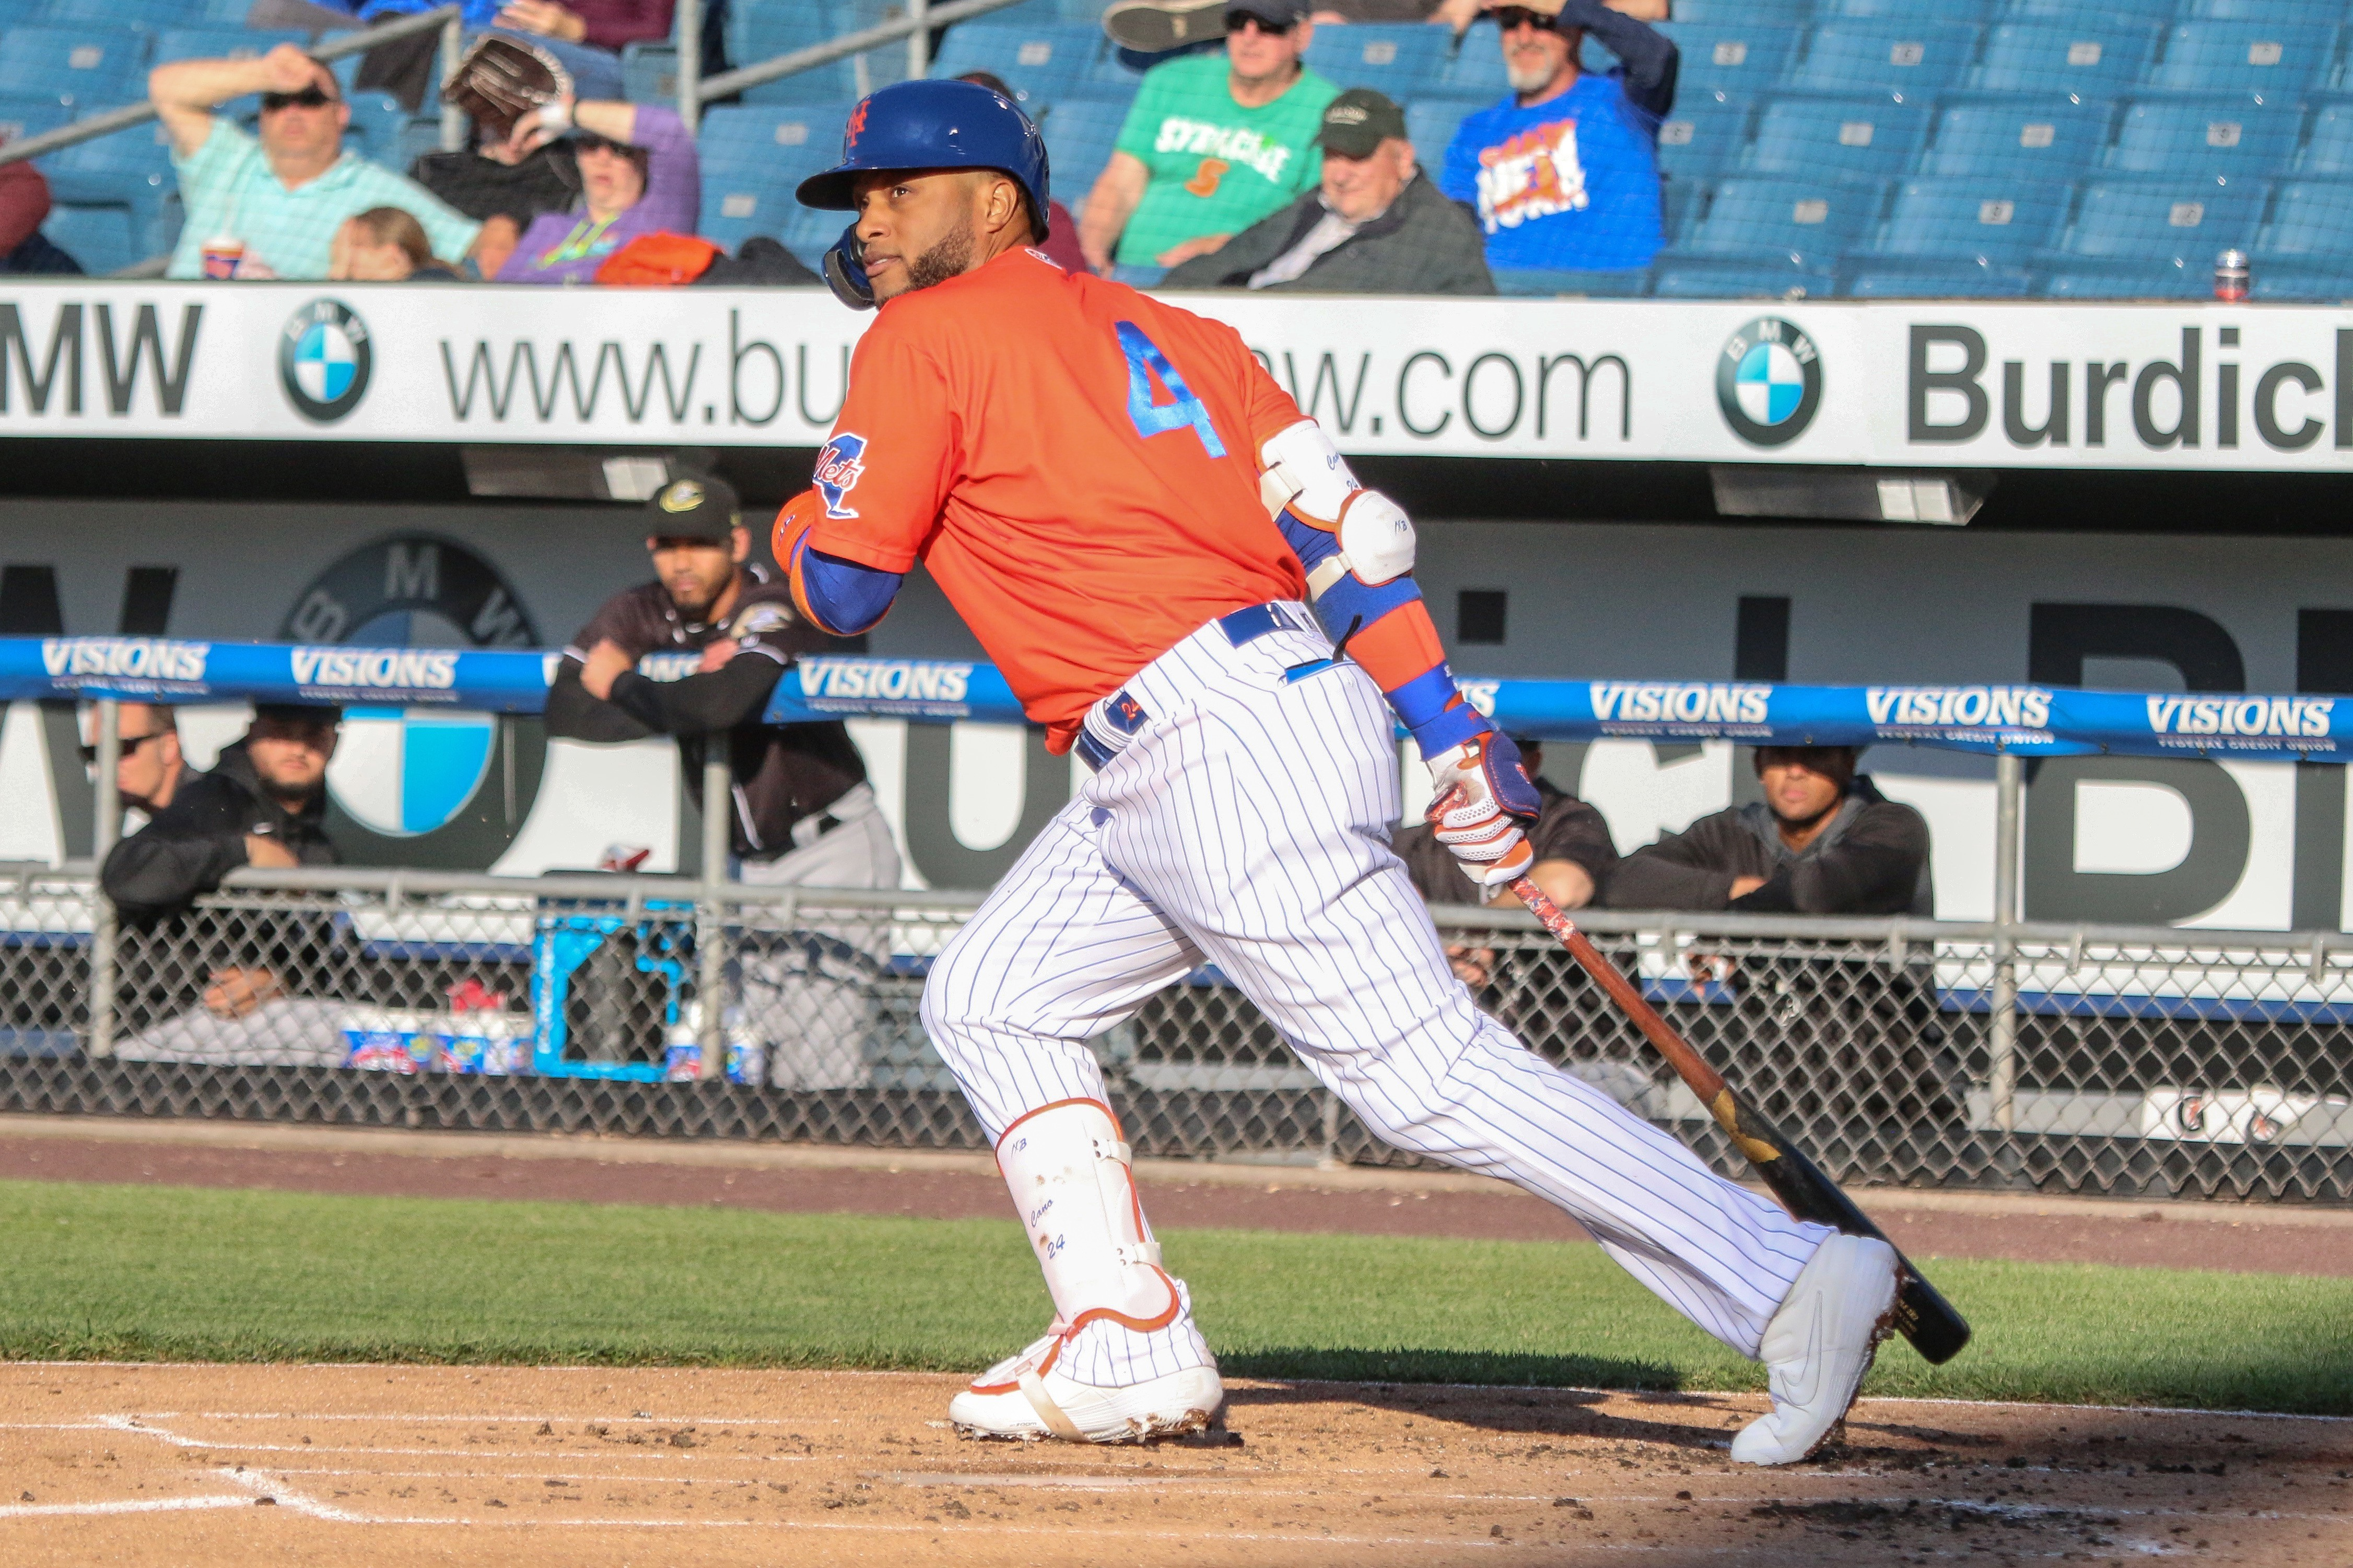 Trio of New York Mets make impact in wild Syracuse win over Charlotte